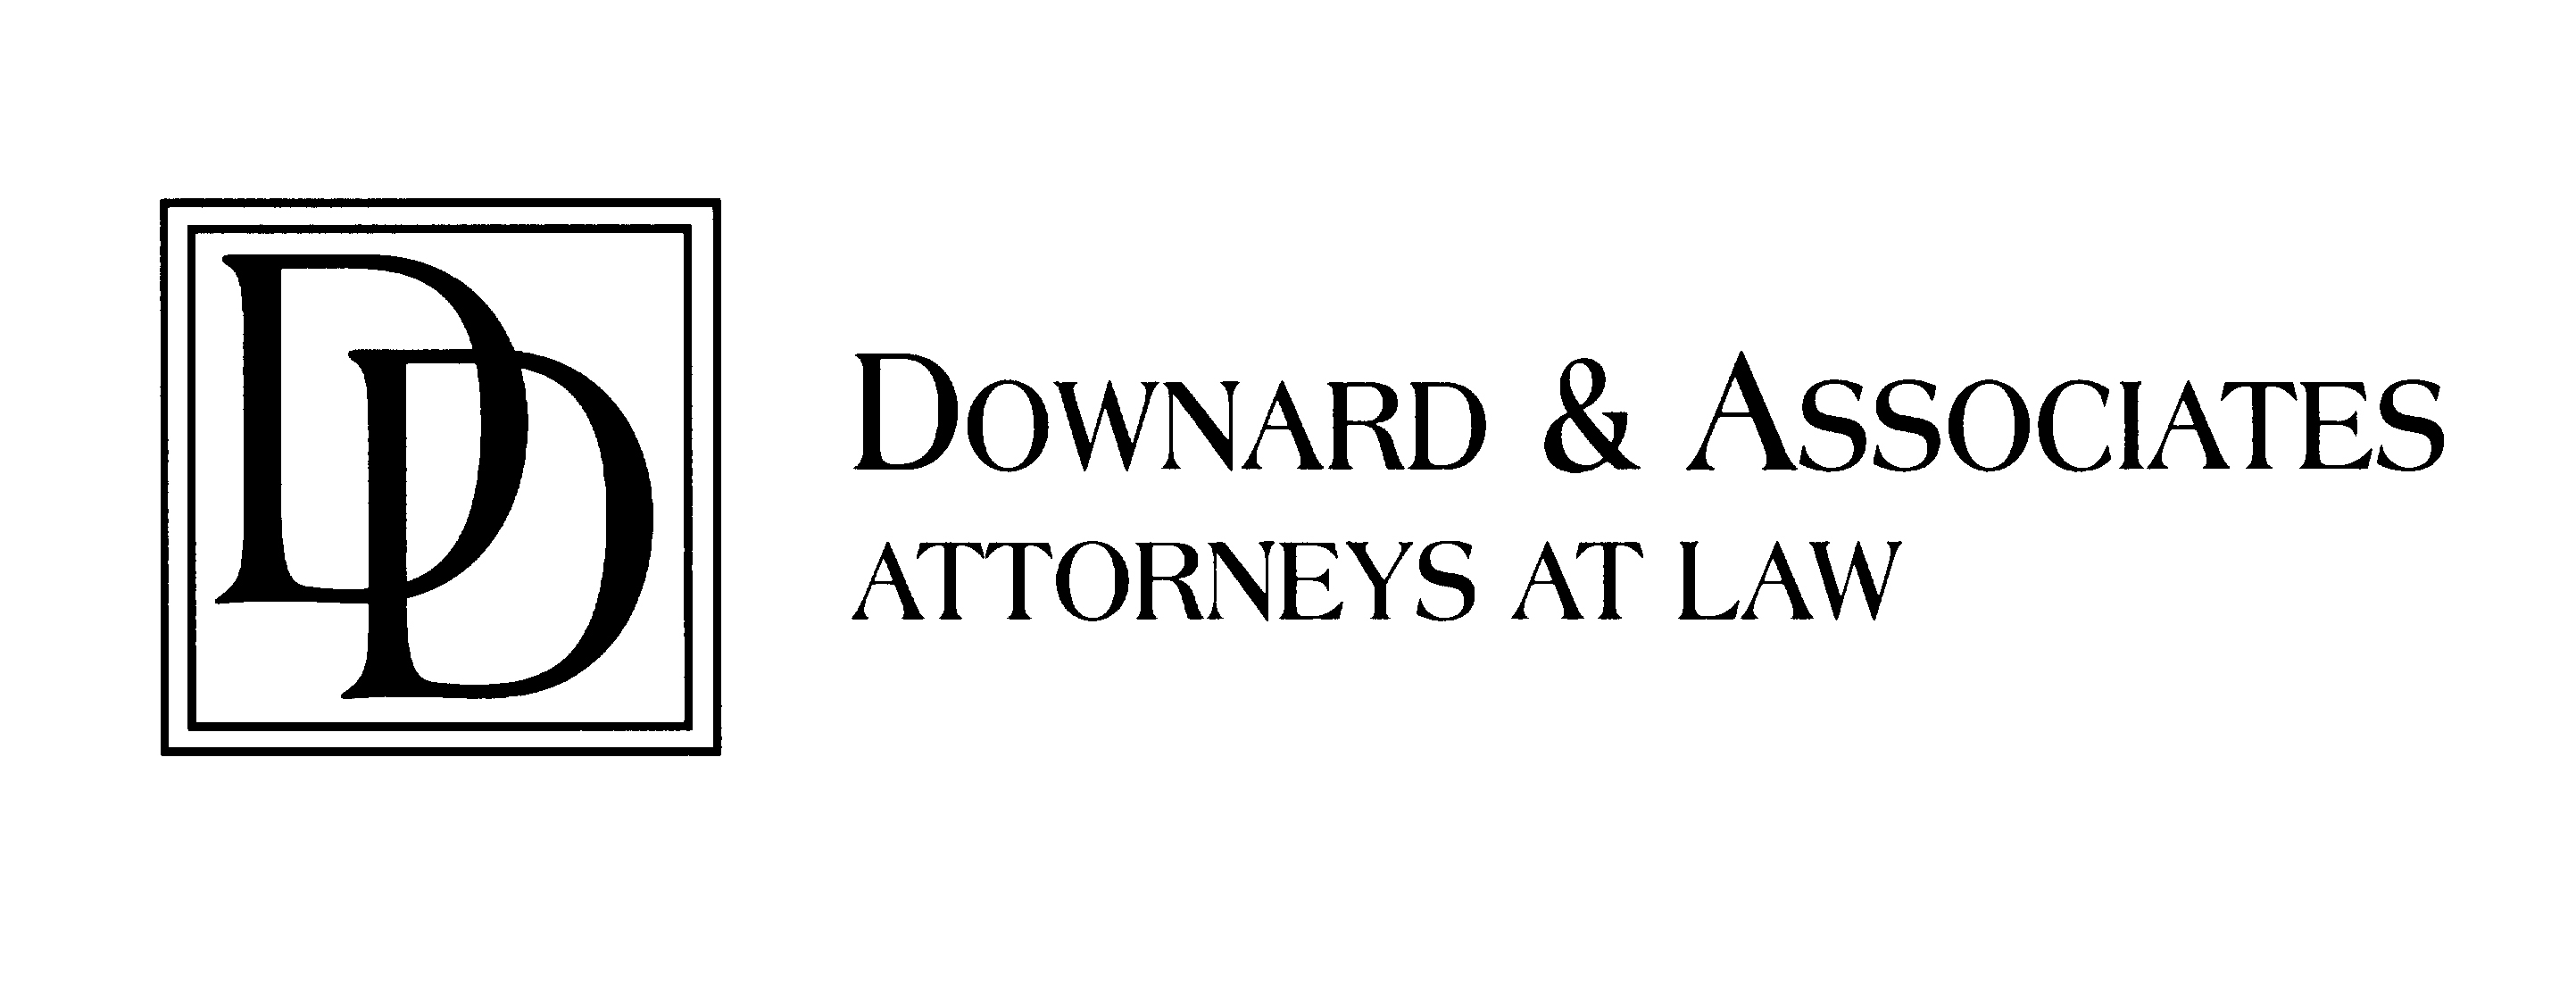 Downard & Associates Attorneys At Law